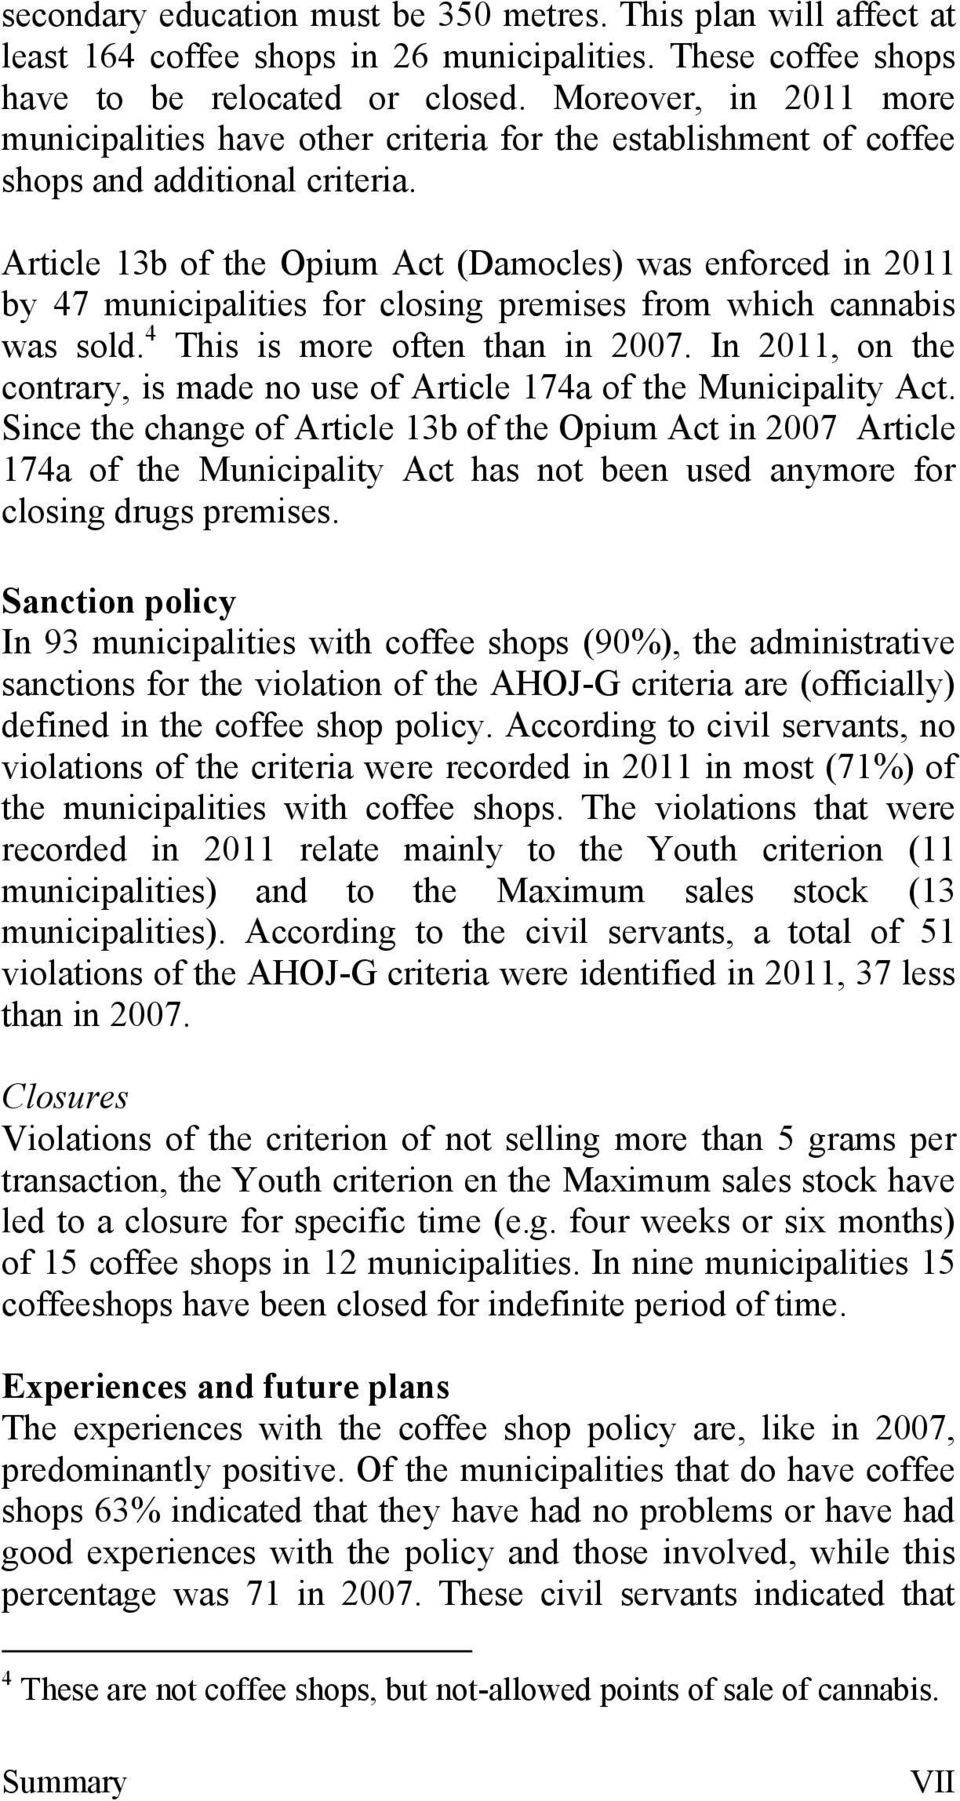 Article 13b of the Opium Act (Damocles) was enforced in 211 by 47 municipalities for closing premises from which cannabis was sold. 4 This is more often than in 27.